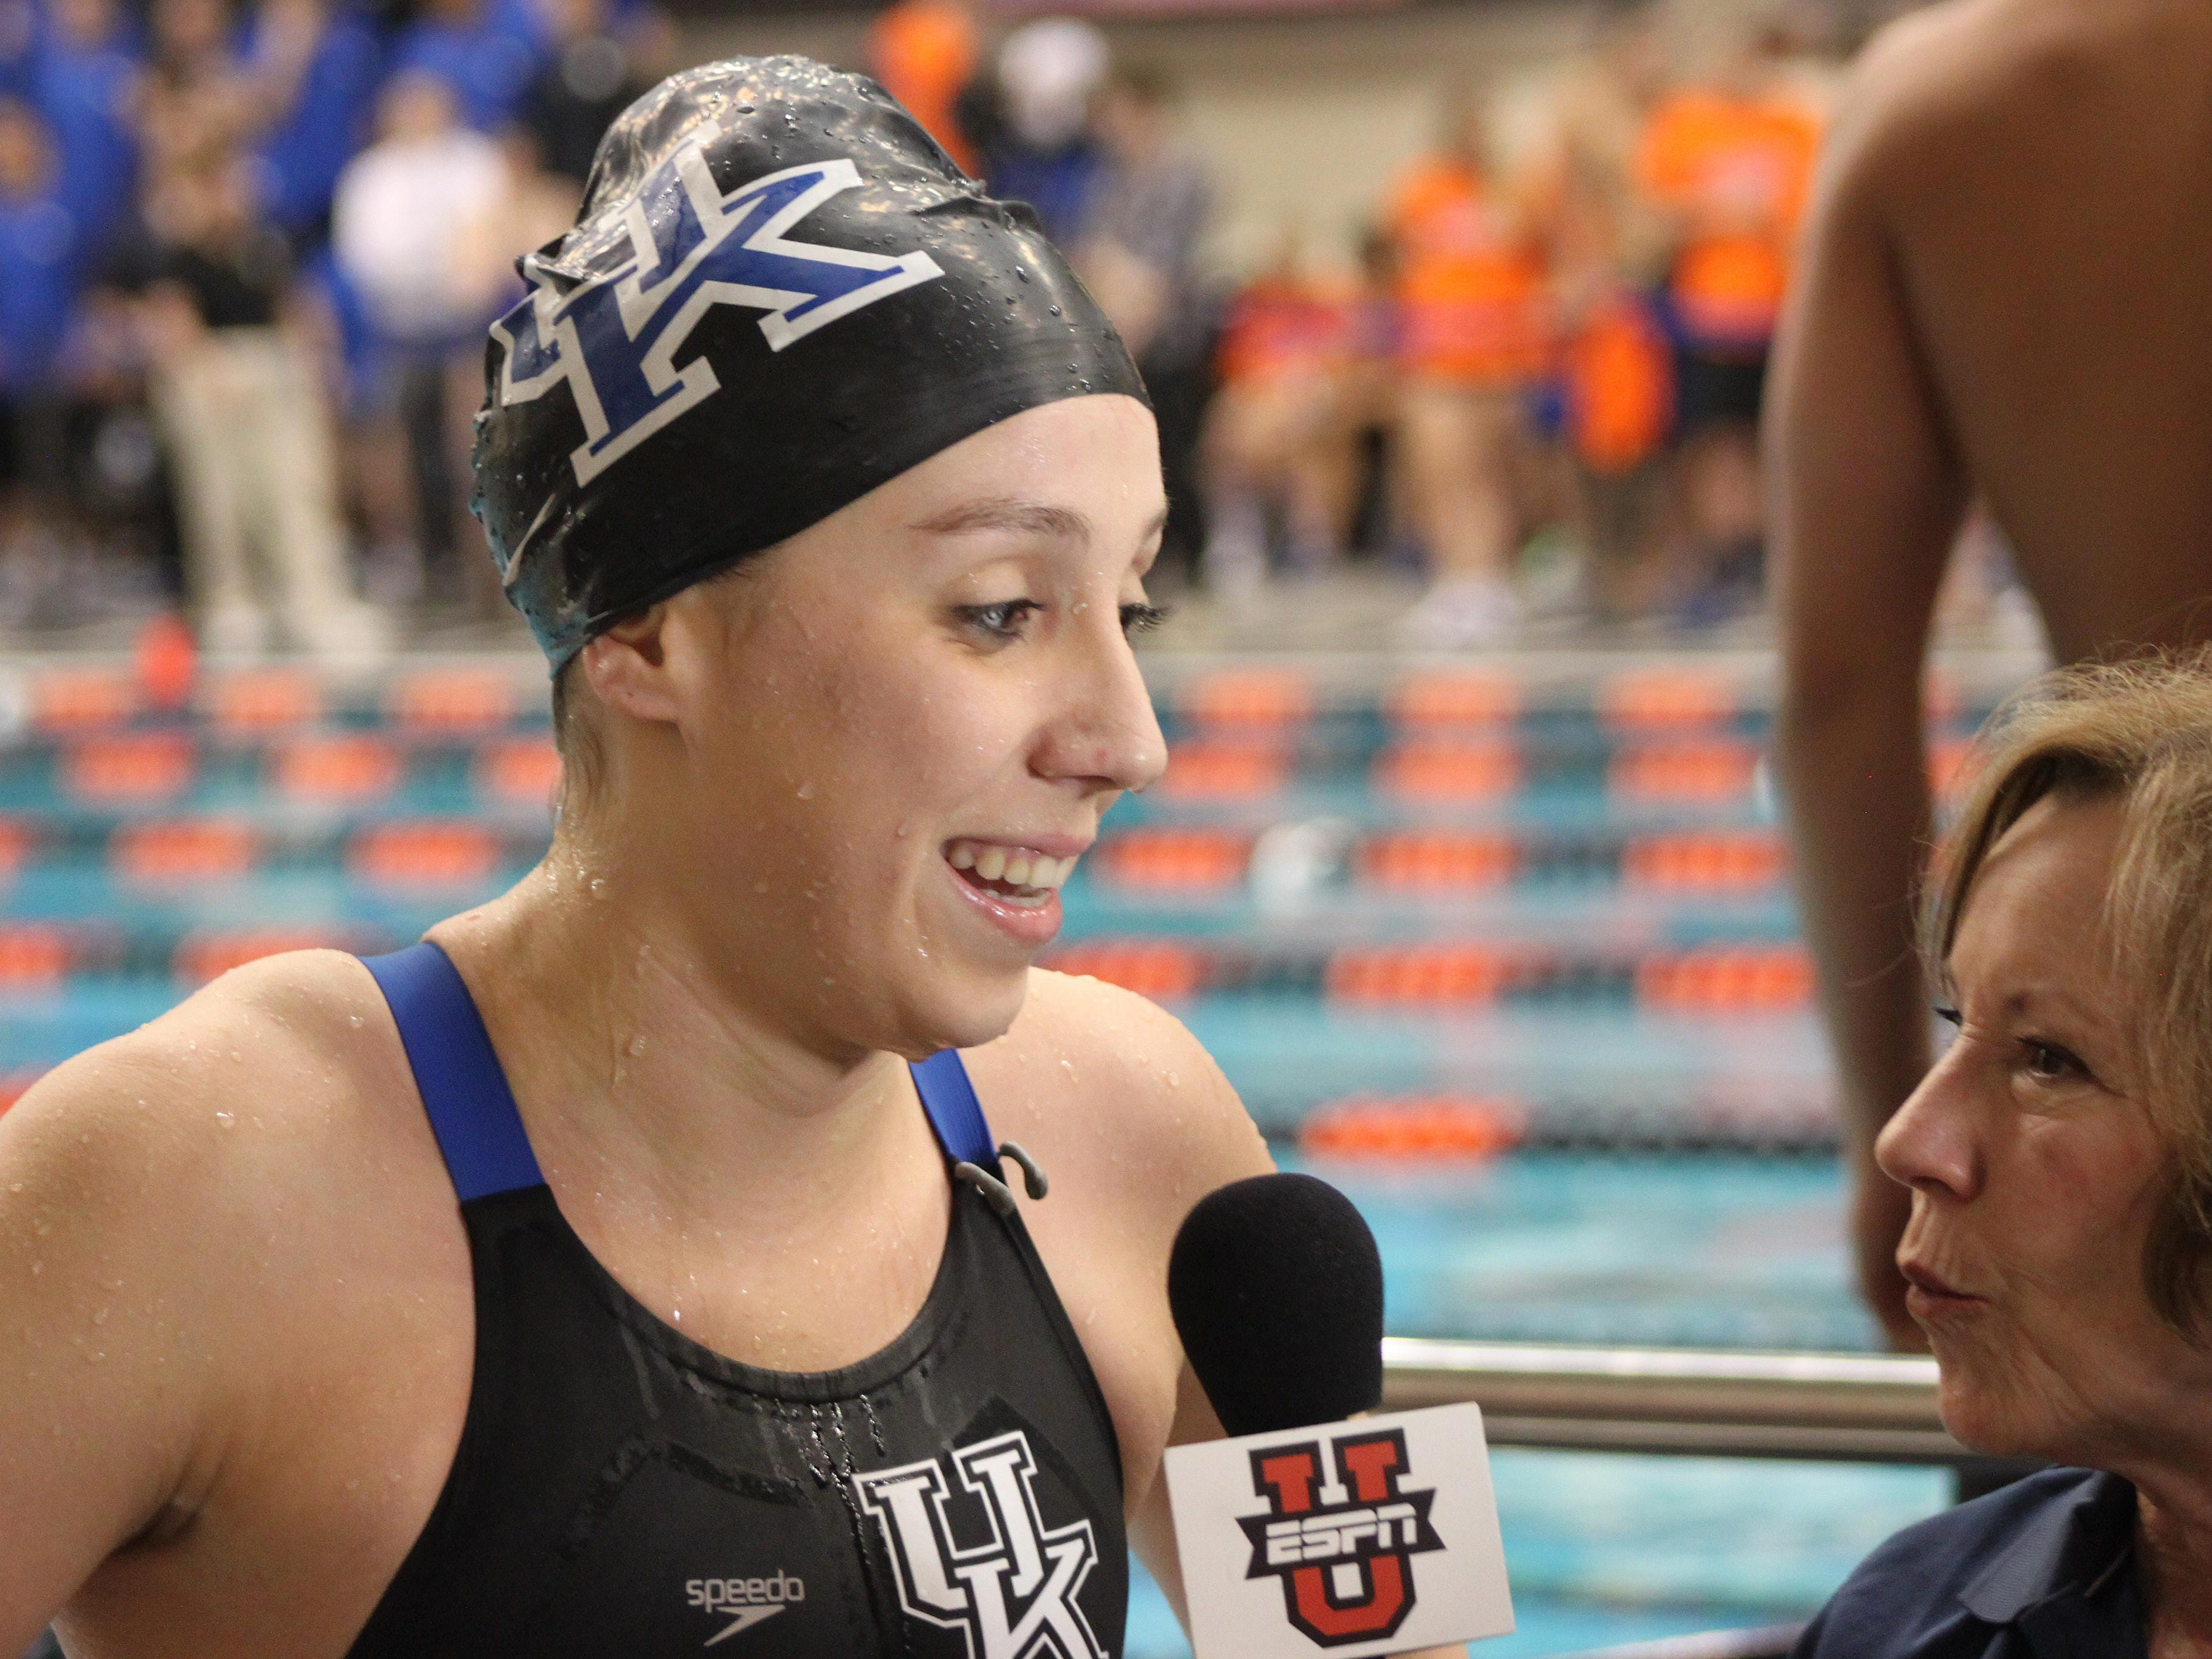 Former Mauldin and SAIL standout Danielle Galyer, who swims for the University of Kentucky, has been selected to the U.S. National Team and the Olympic Trials.